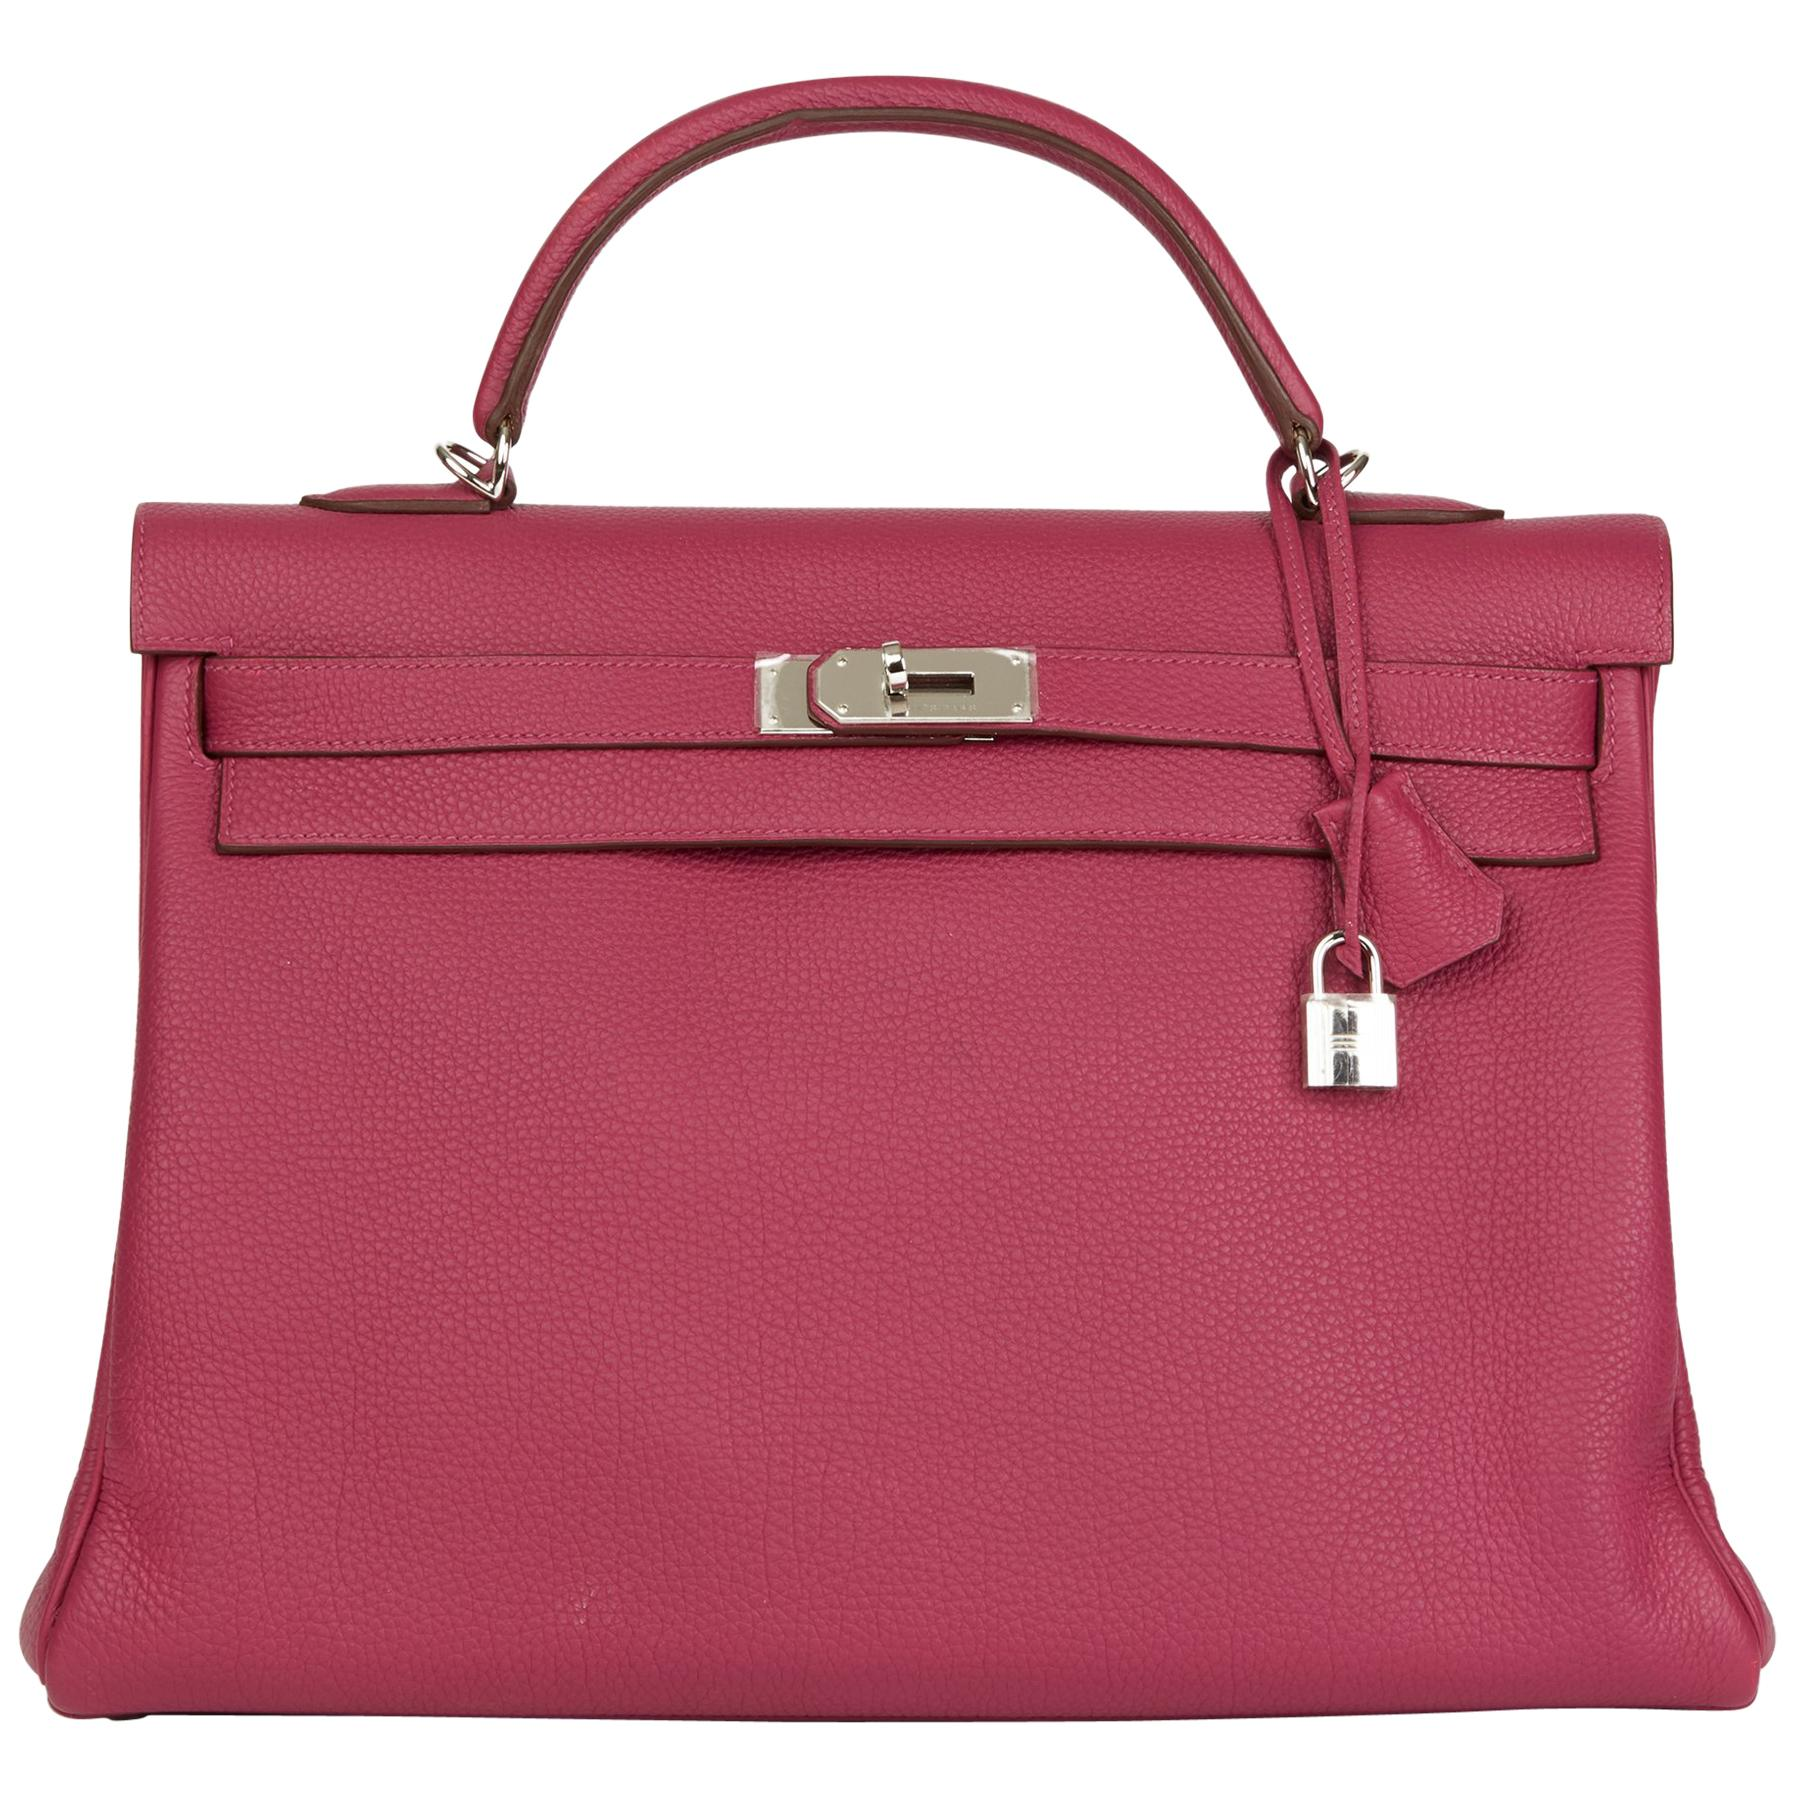 f326c7d9cc67 Pink Hermes Bags - 128 For Sale on 1stdibs